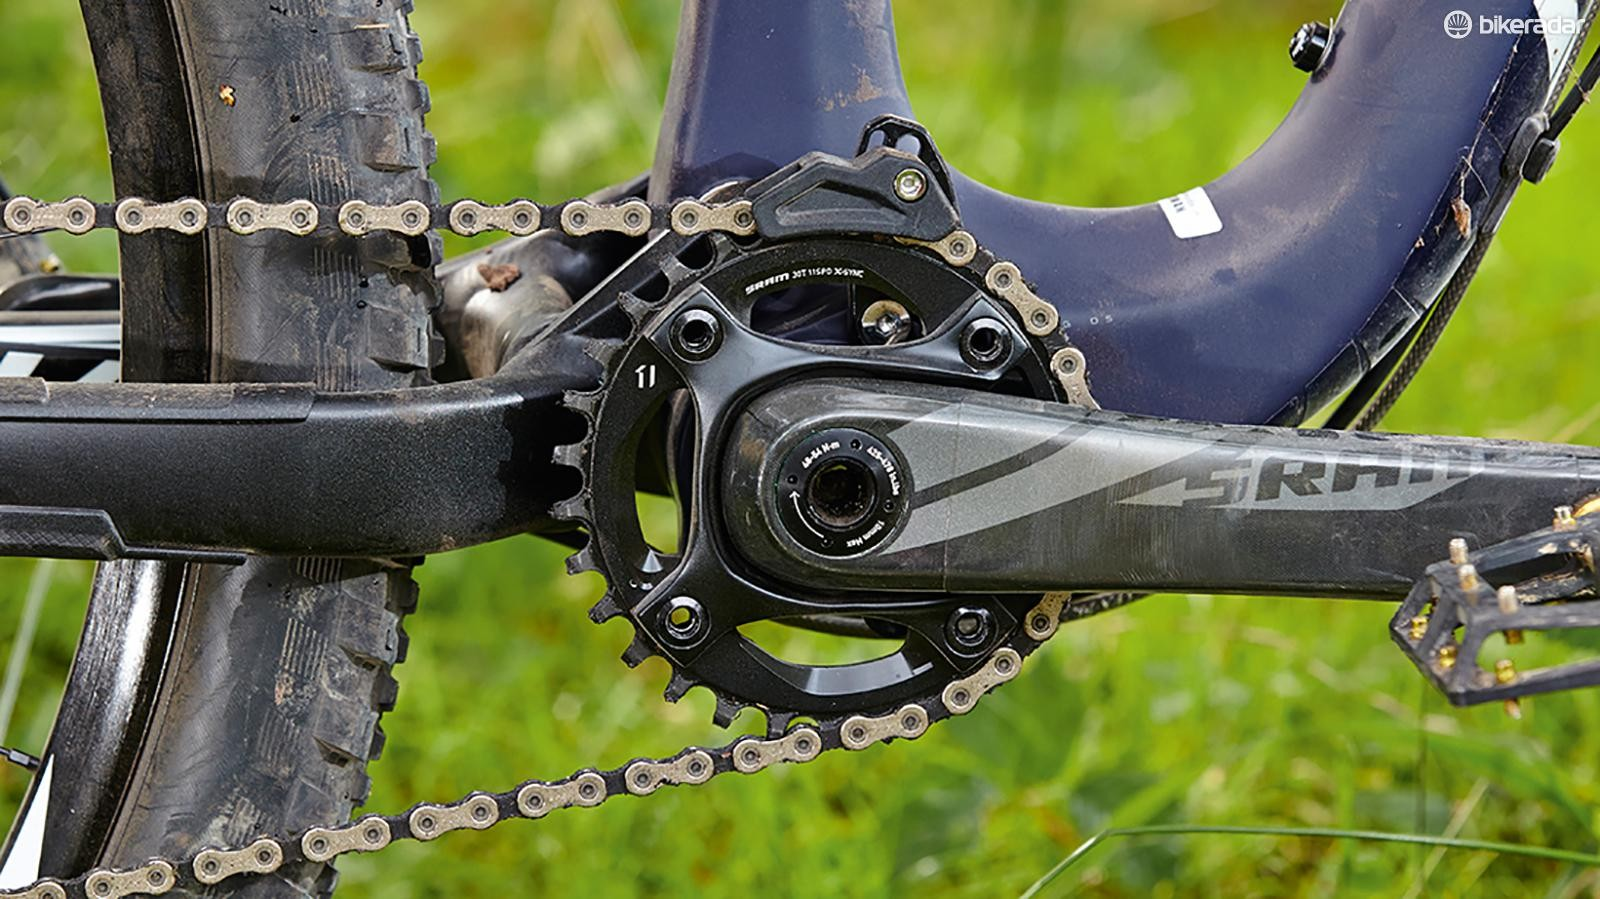 The carbon frame and cranks help keep overall weight below 13kg